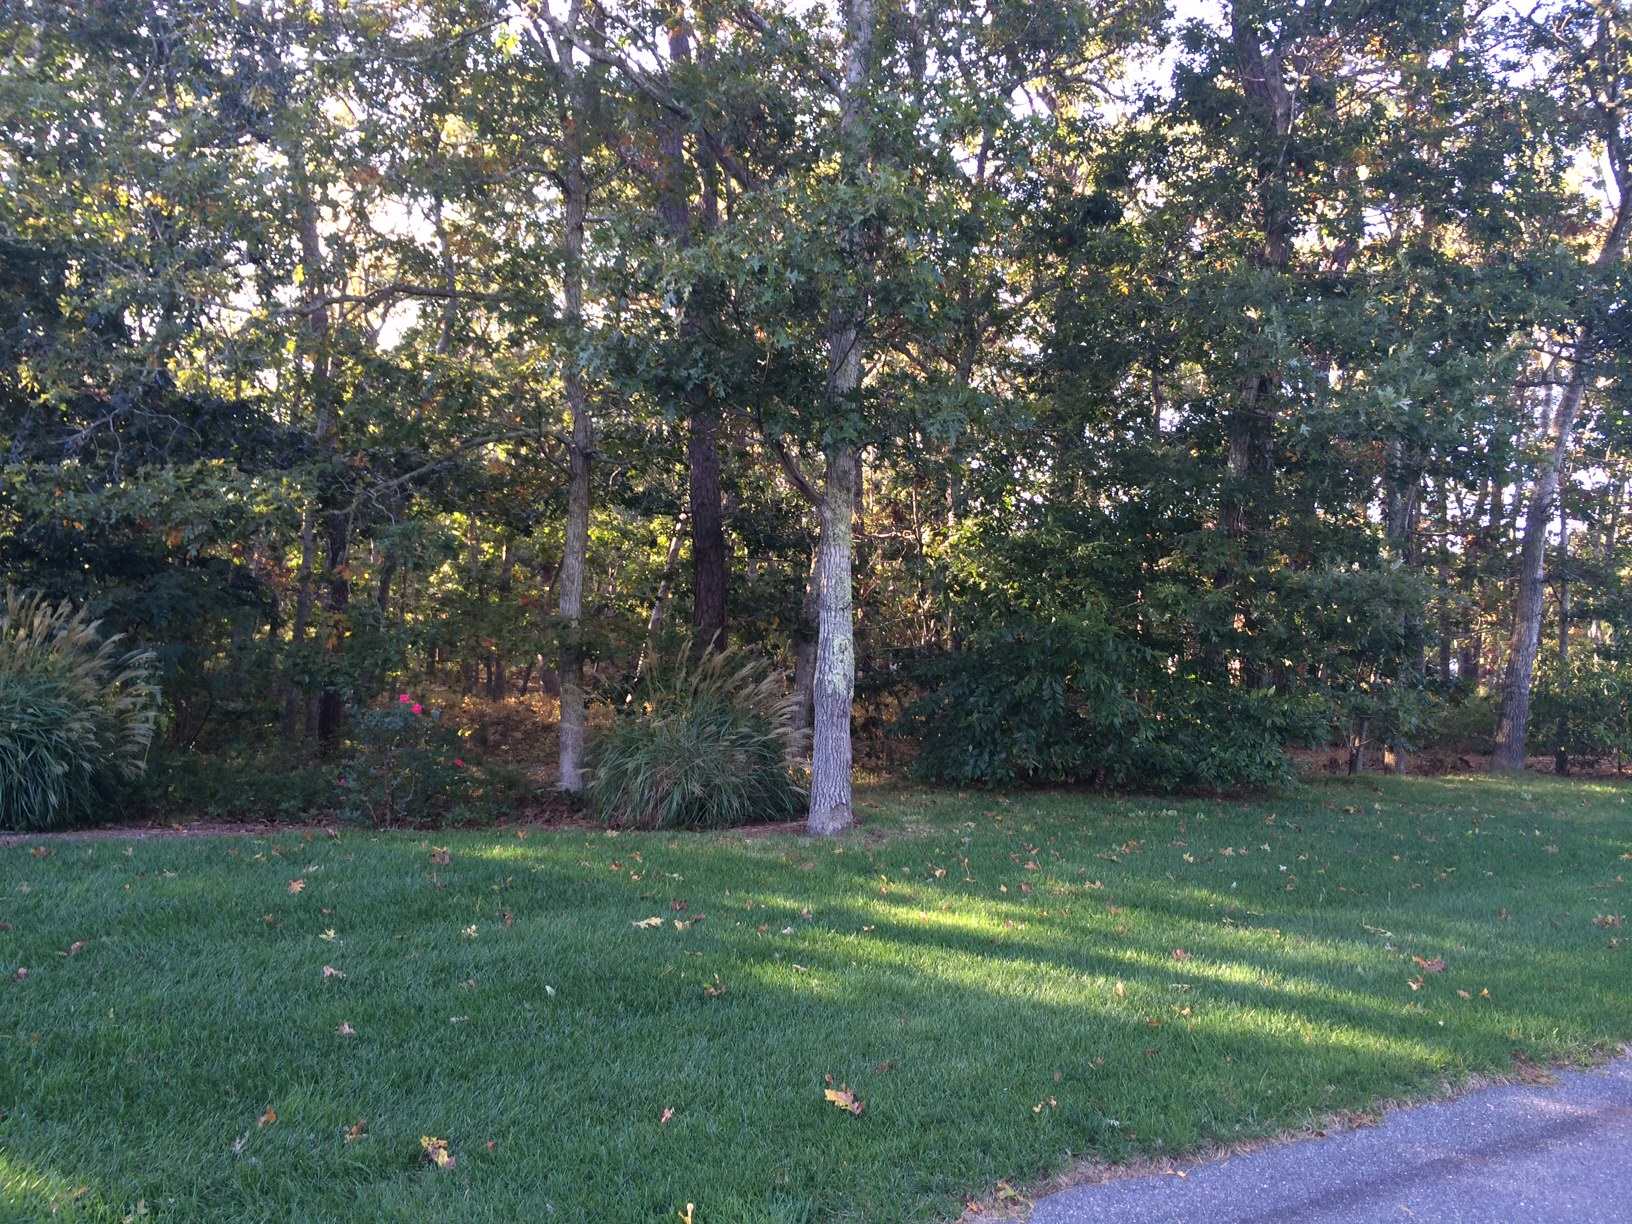 Land for Sale at 2 Oyster Pond Road, Harwich, MA Harwich, Massachusetts, 02645 United States